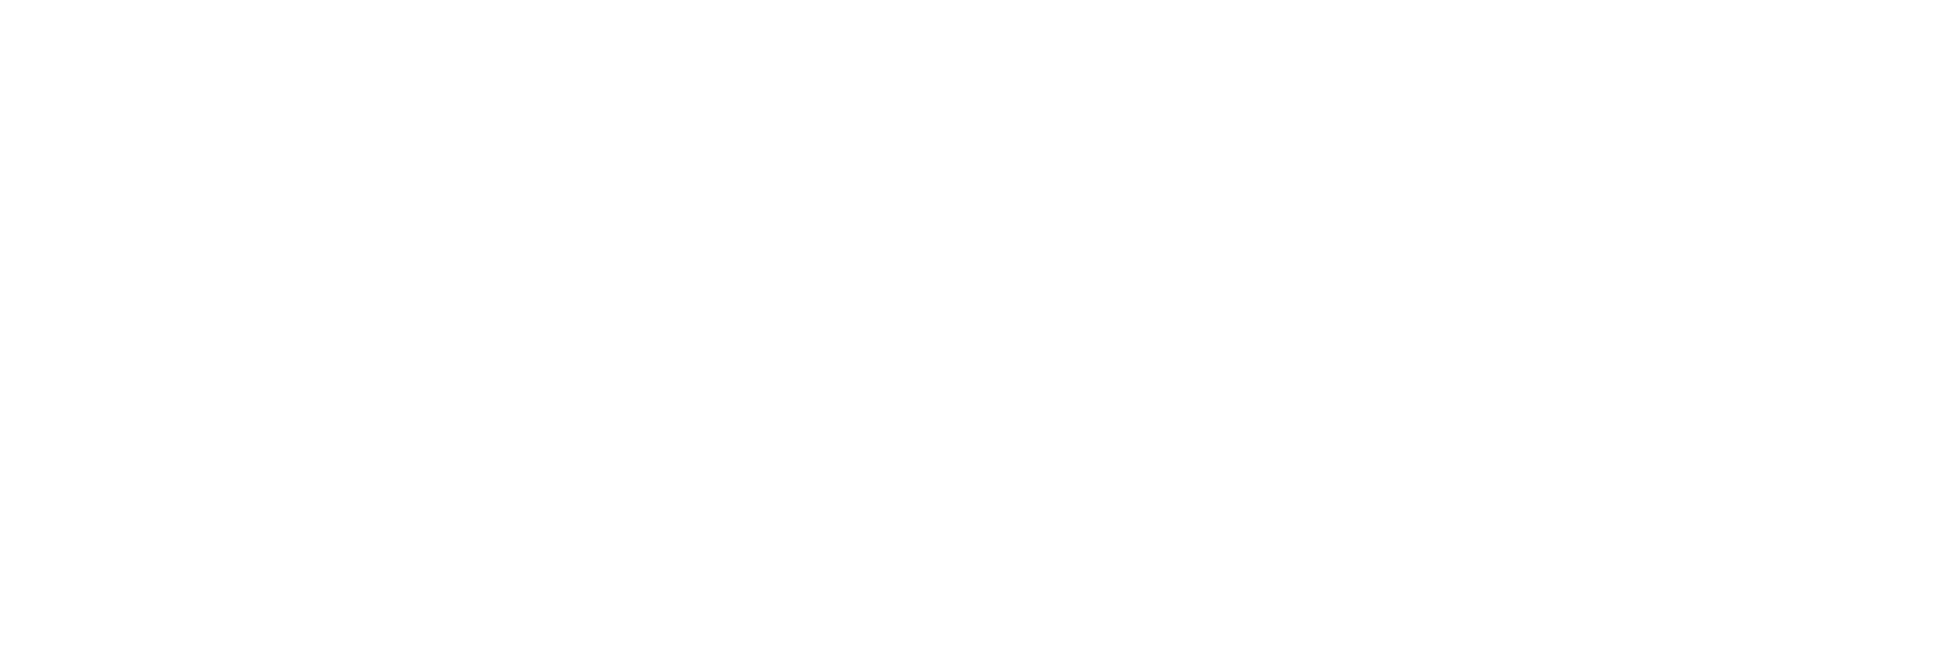 Dental Chairs & Dental Equipment Manufacturer. We deliver affordable solution for dentists and orthodontists